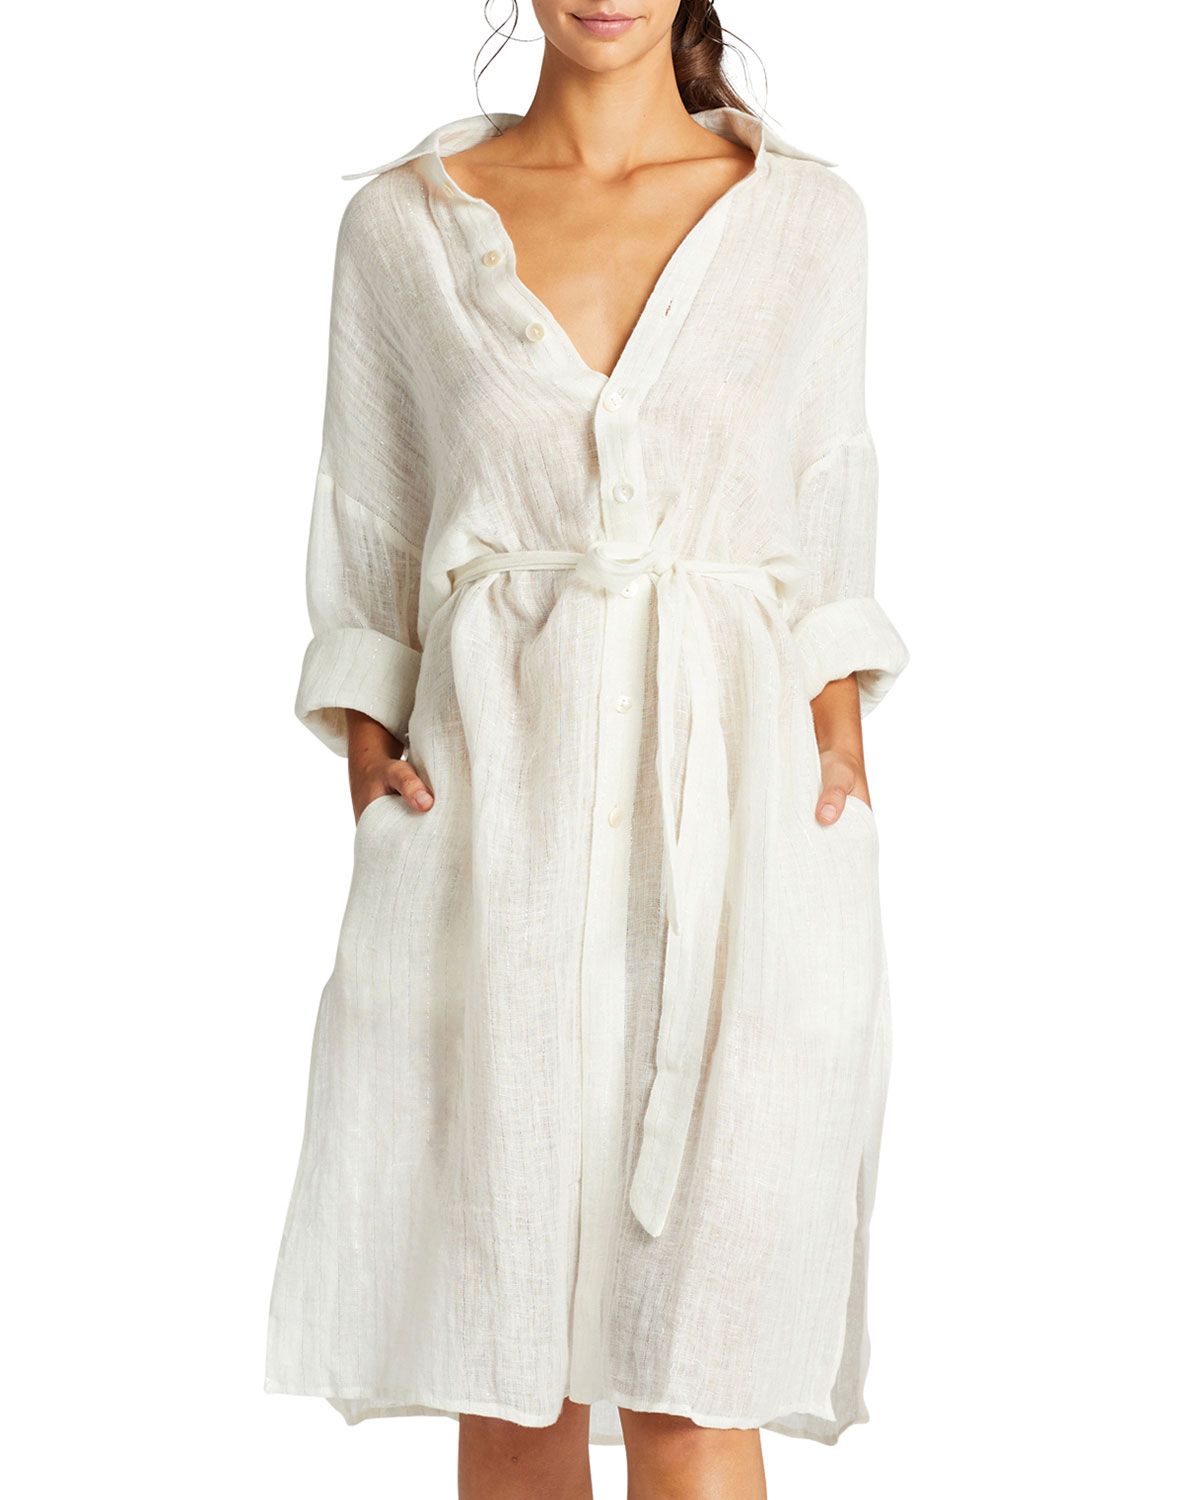 Vitamin A Dresses RIVIERA BELTED COVERUP SHIRT DRESS